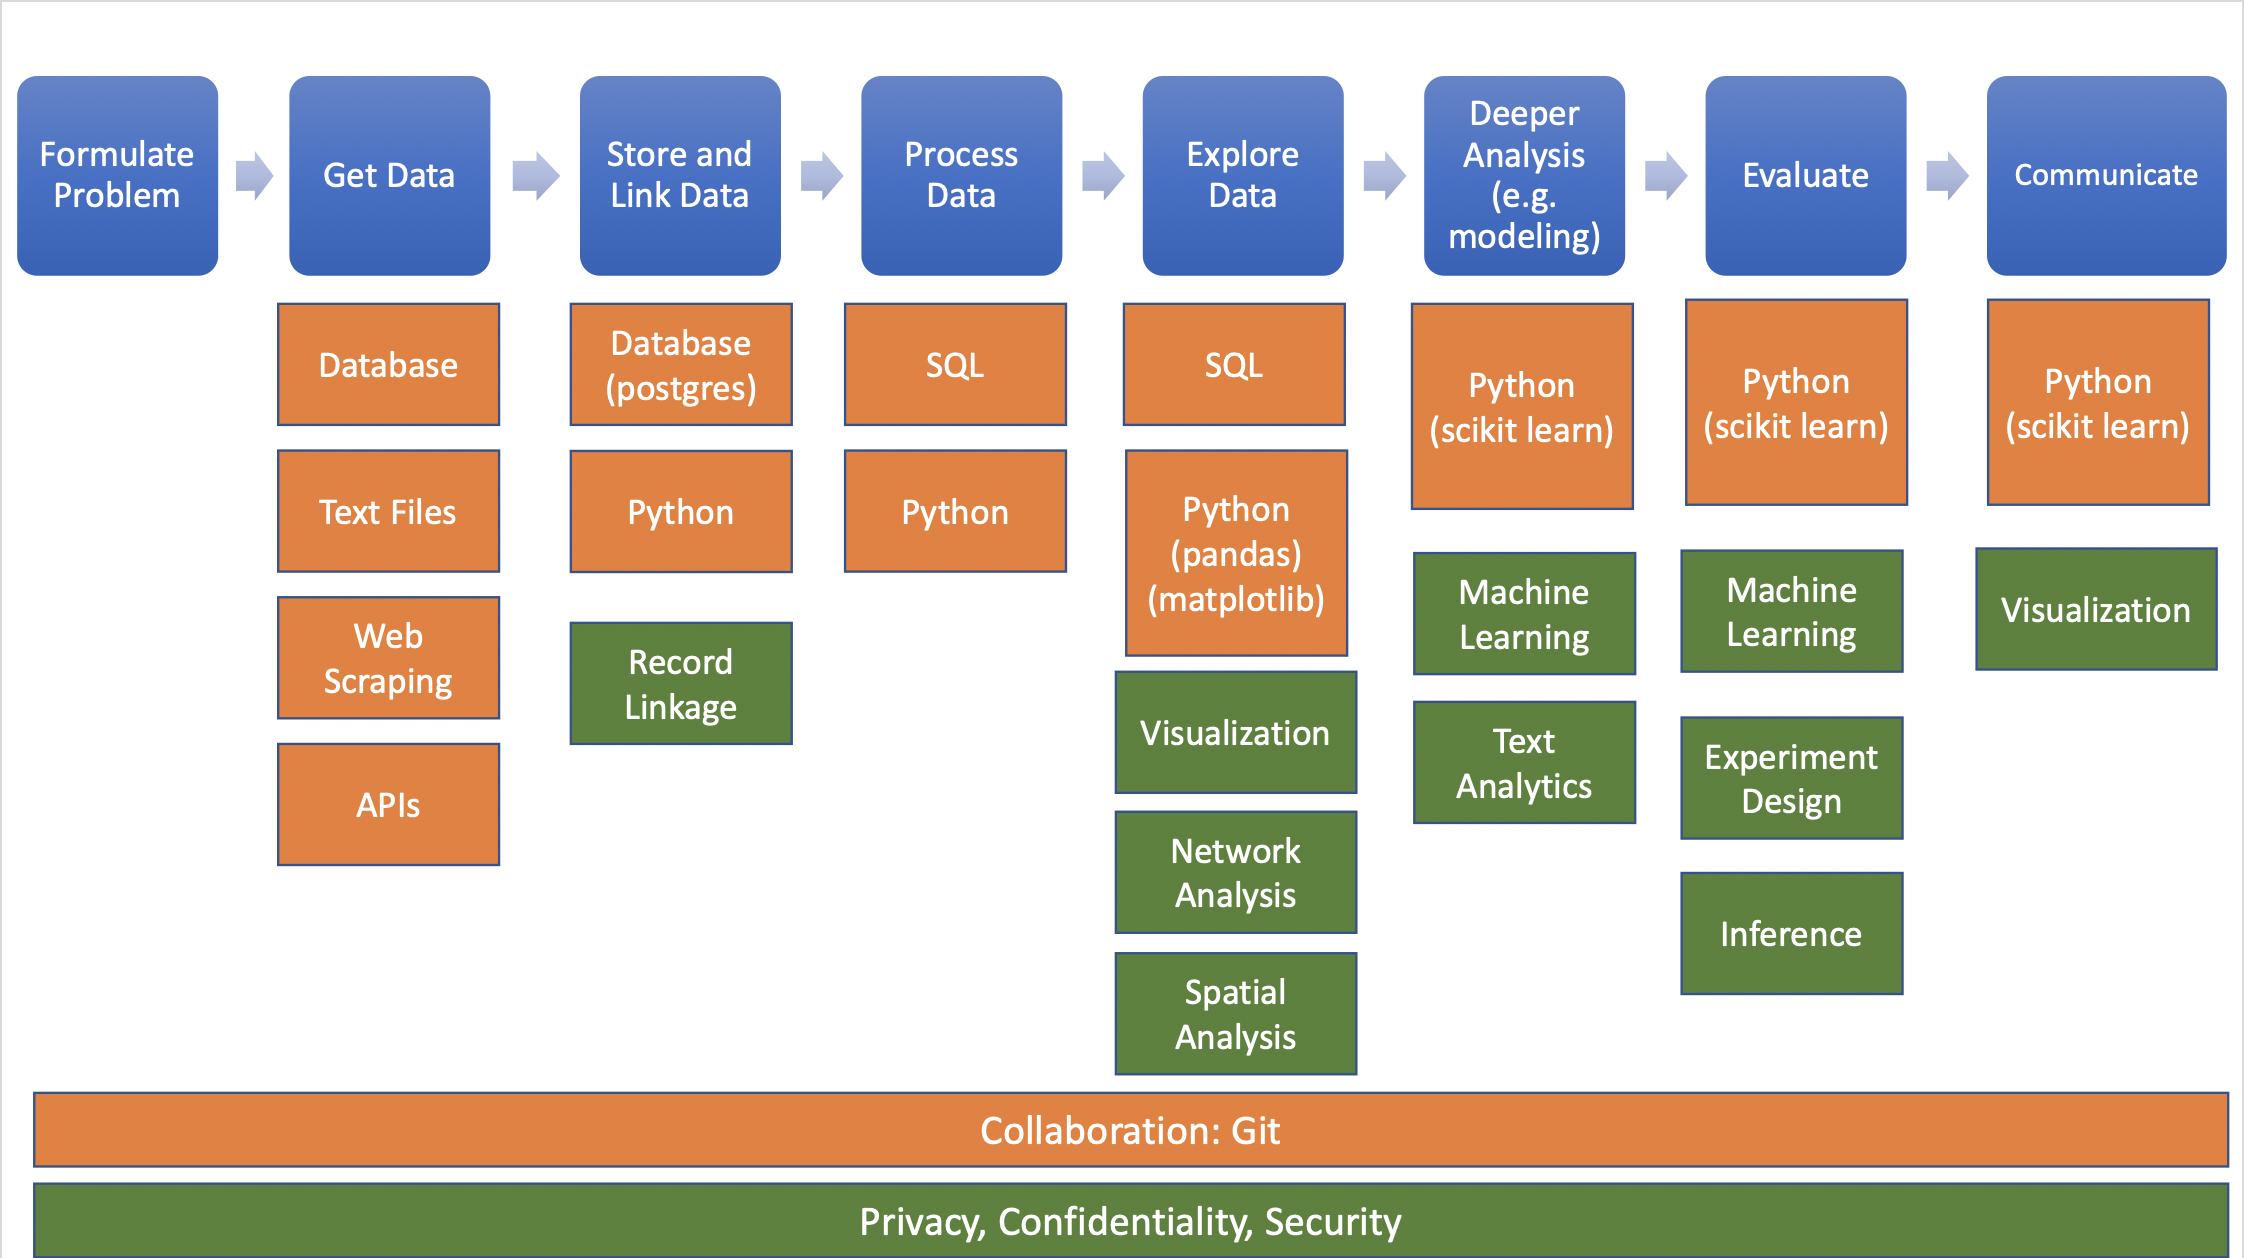 The data science project workflow. Blue represents each step in the project, orange represents the tools used in that step, and green represents the methods for analysis.